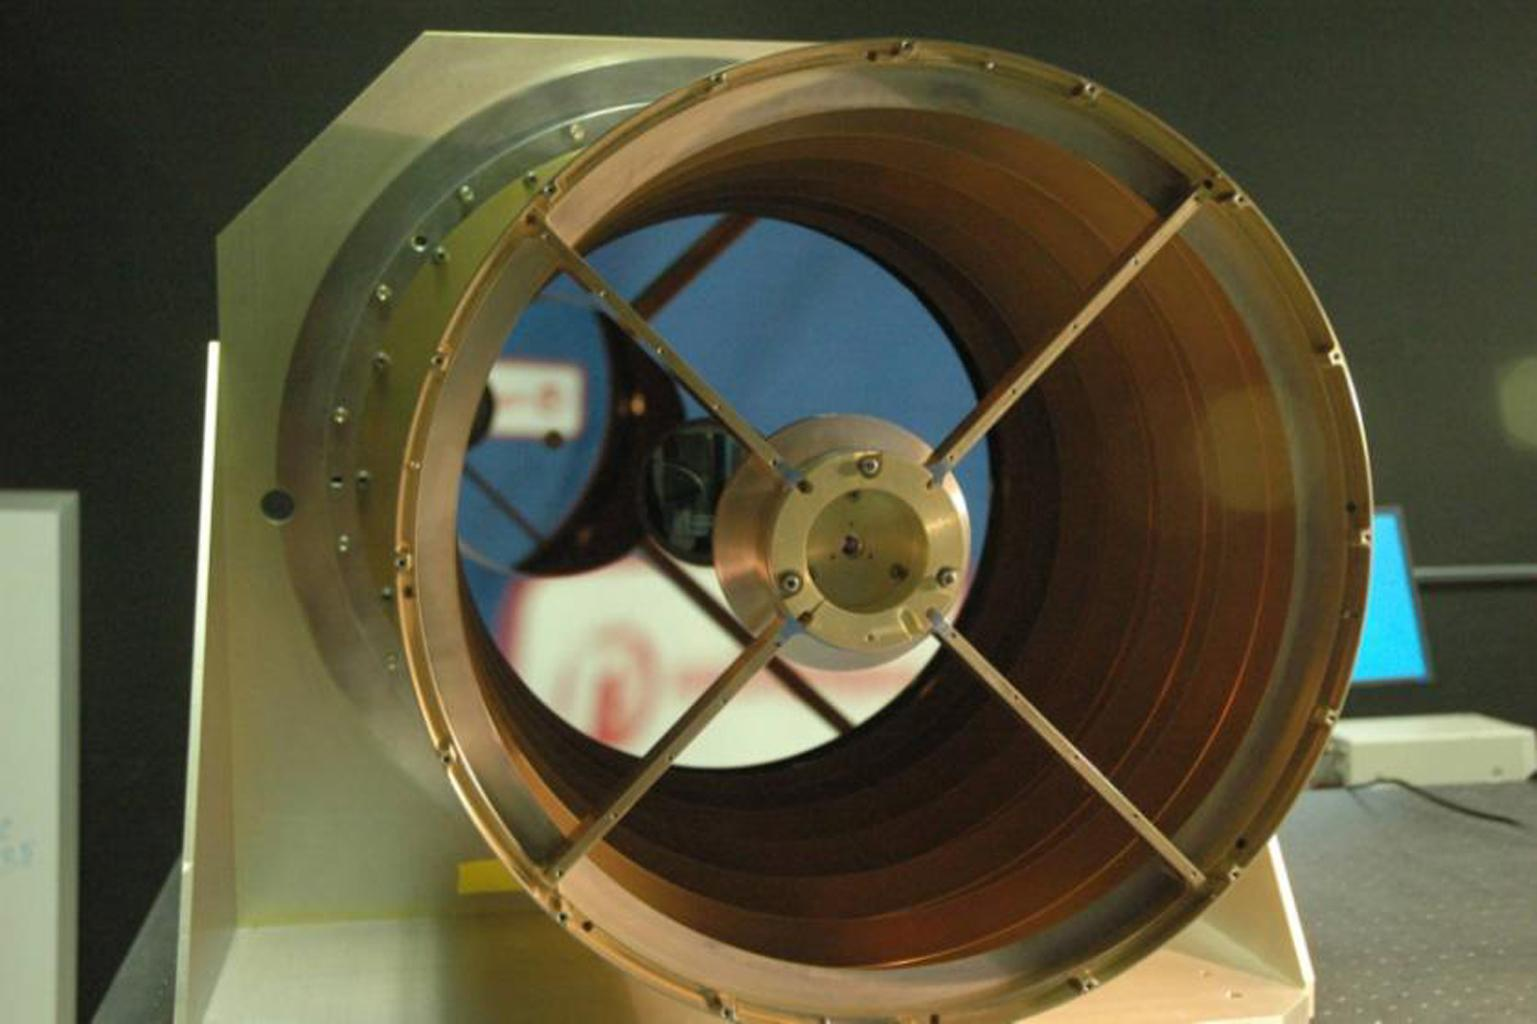 View looking down the barrel of NASA's Wide-field Infrared Survey Explorer telescope. This image shows the 40 cm WISE primary mirror, which is the largest optical element in the WISE system.